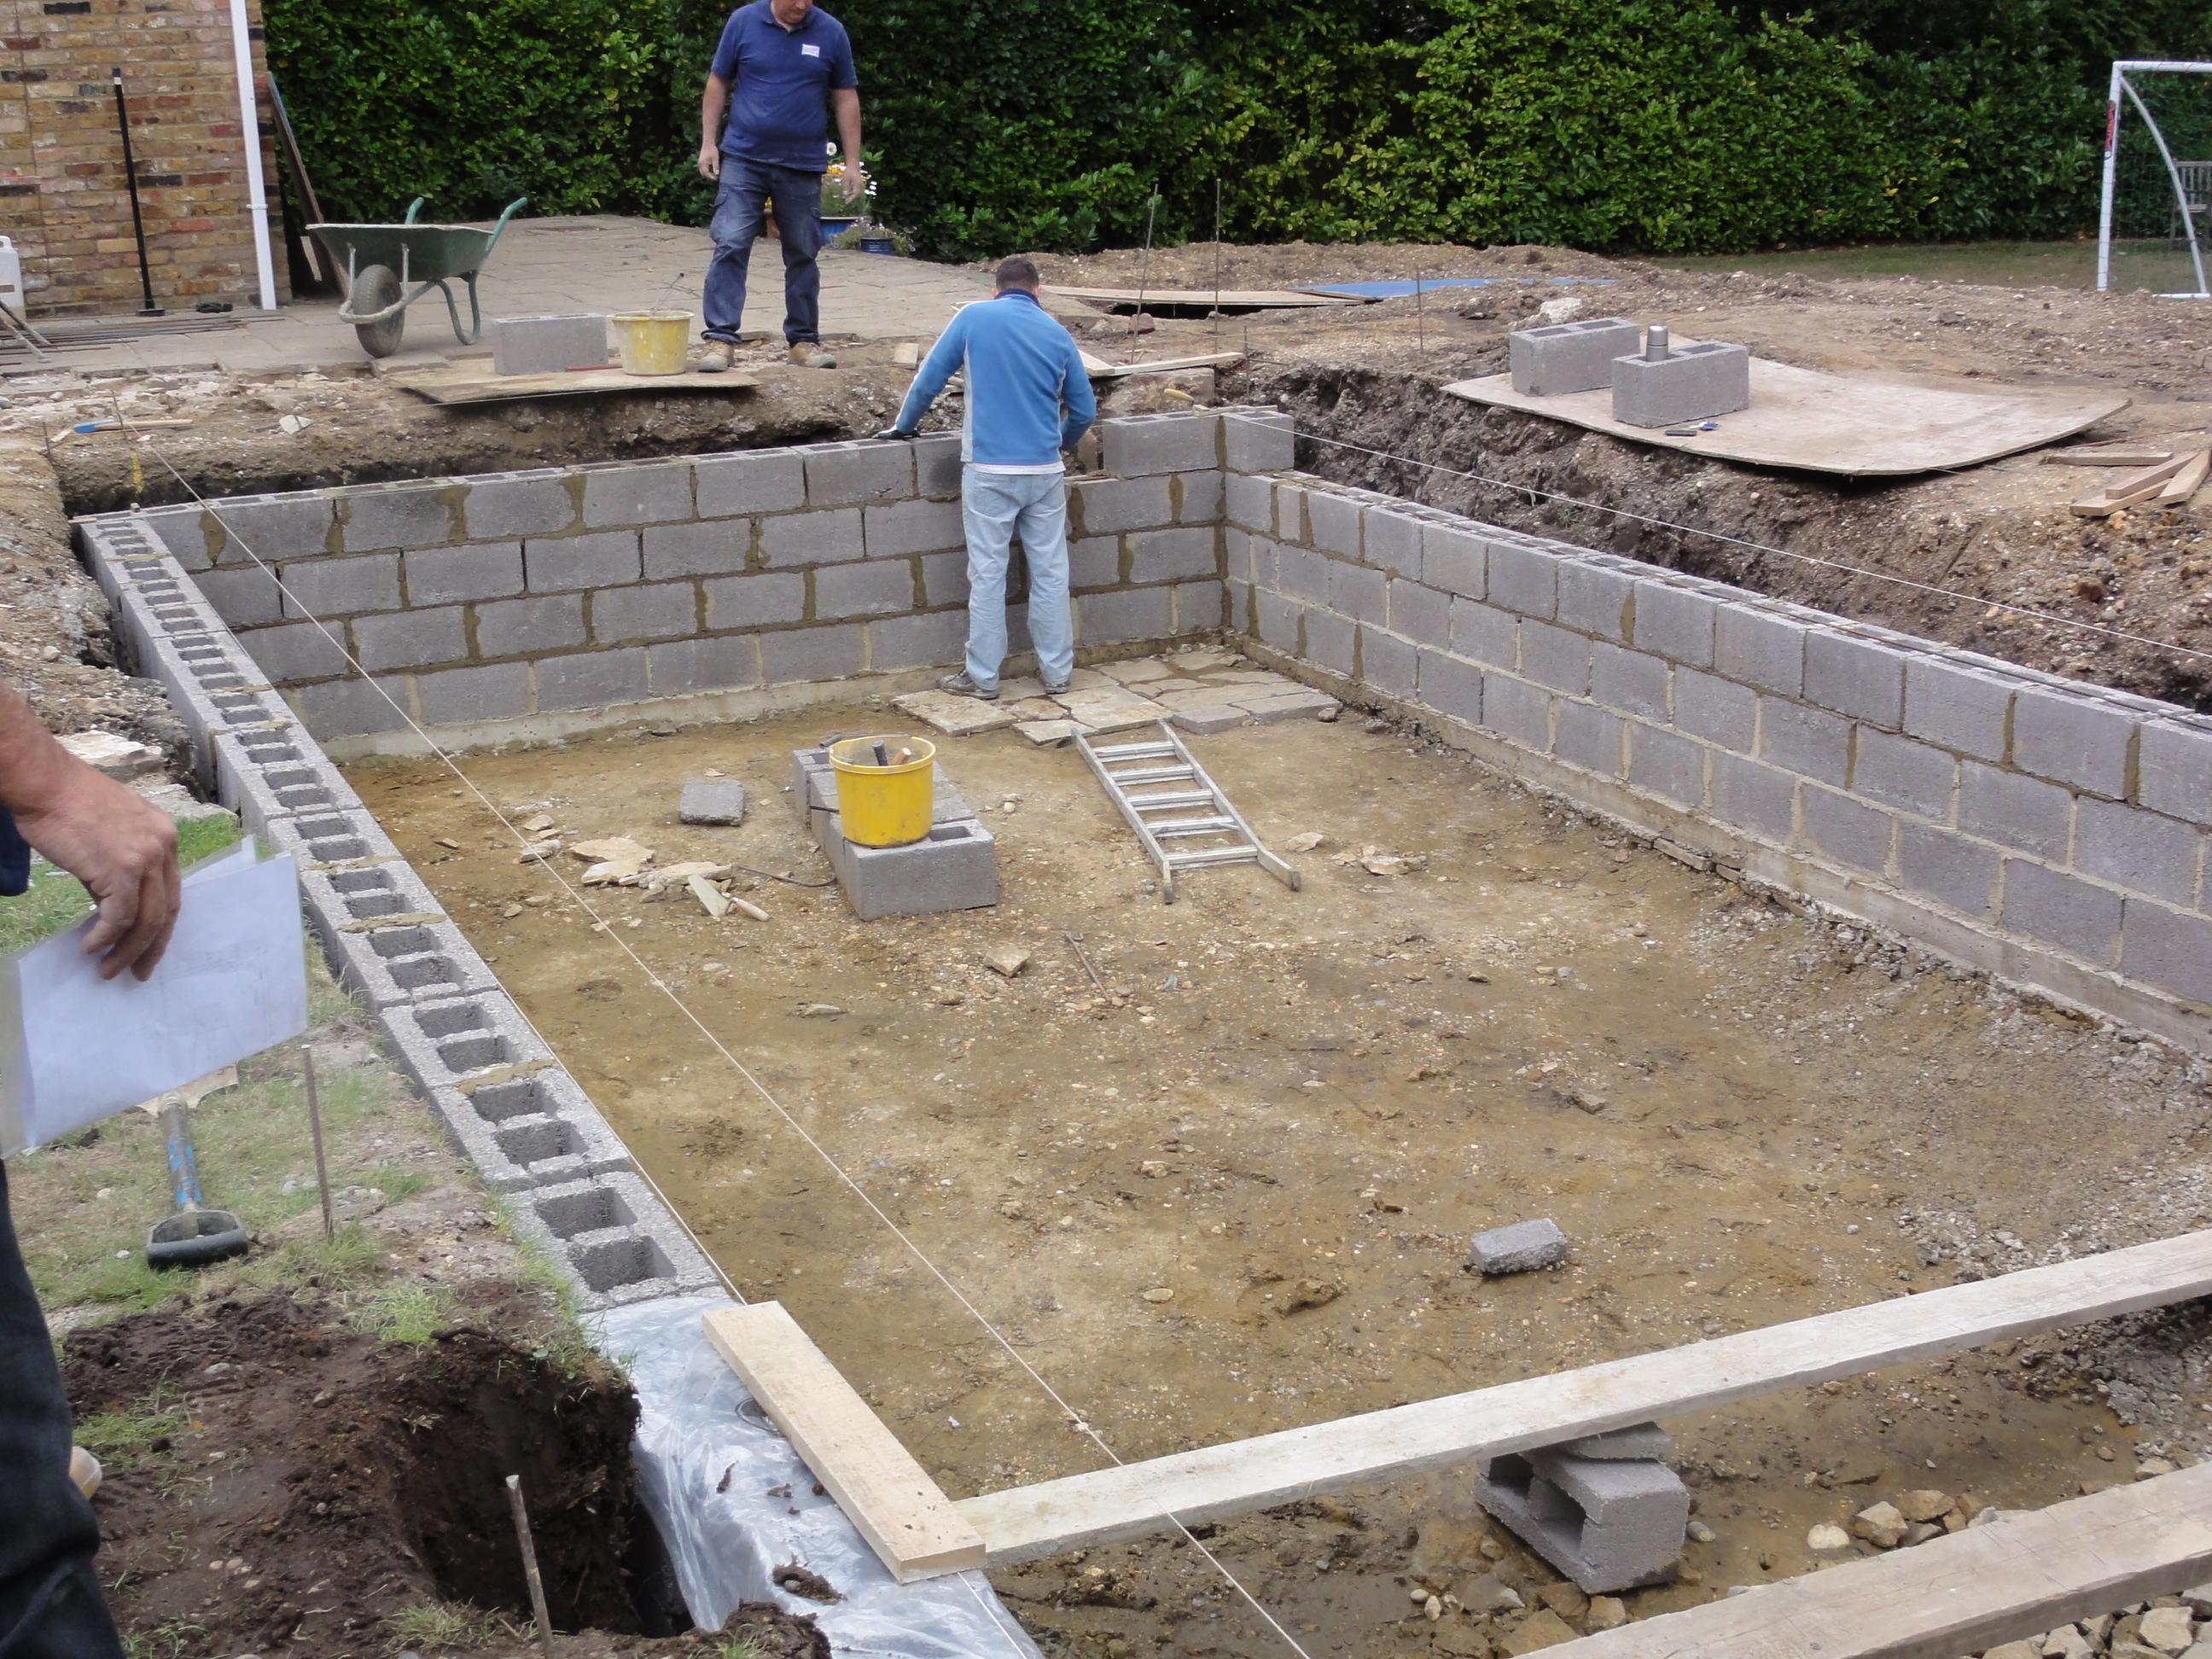 Building your own pool spain - Swimming pool construction in india ...